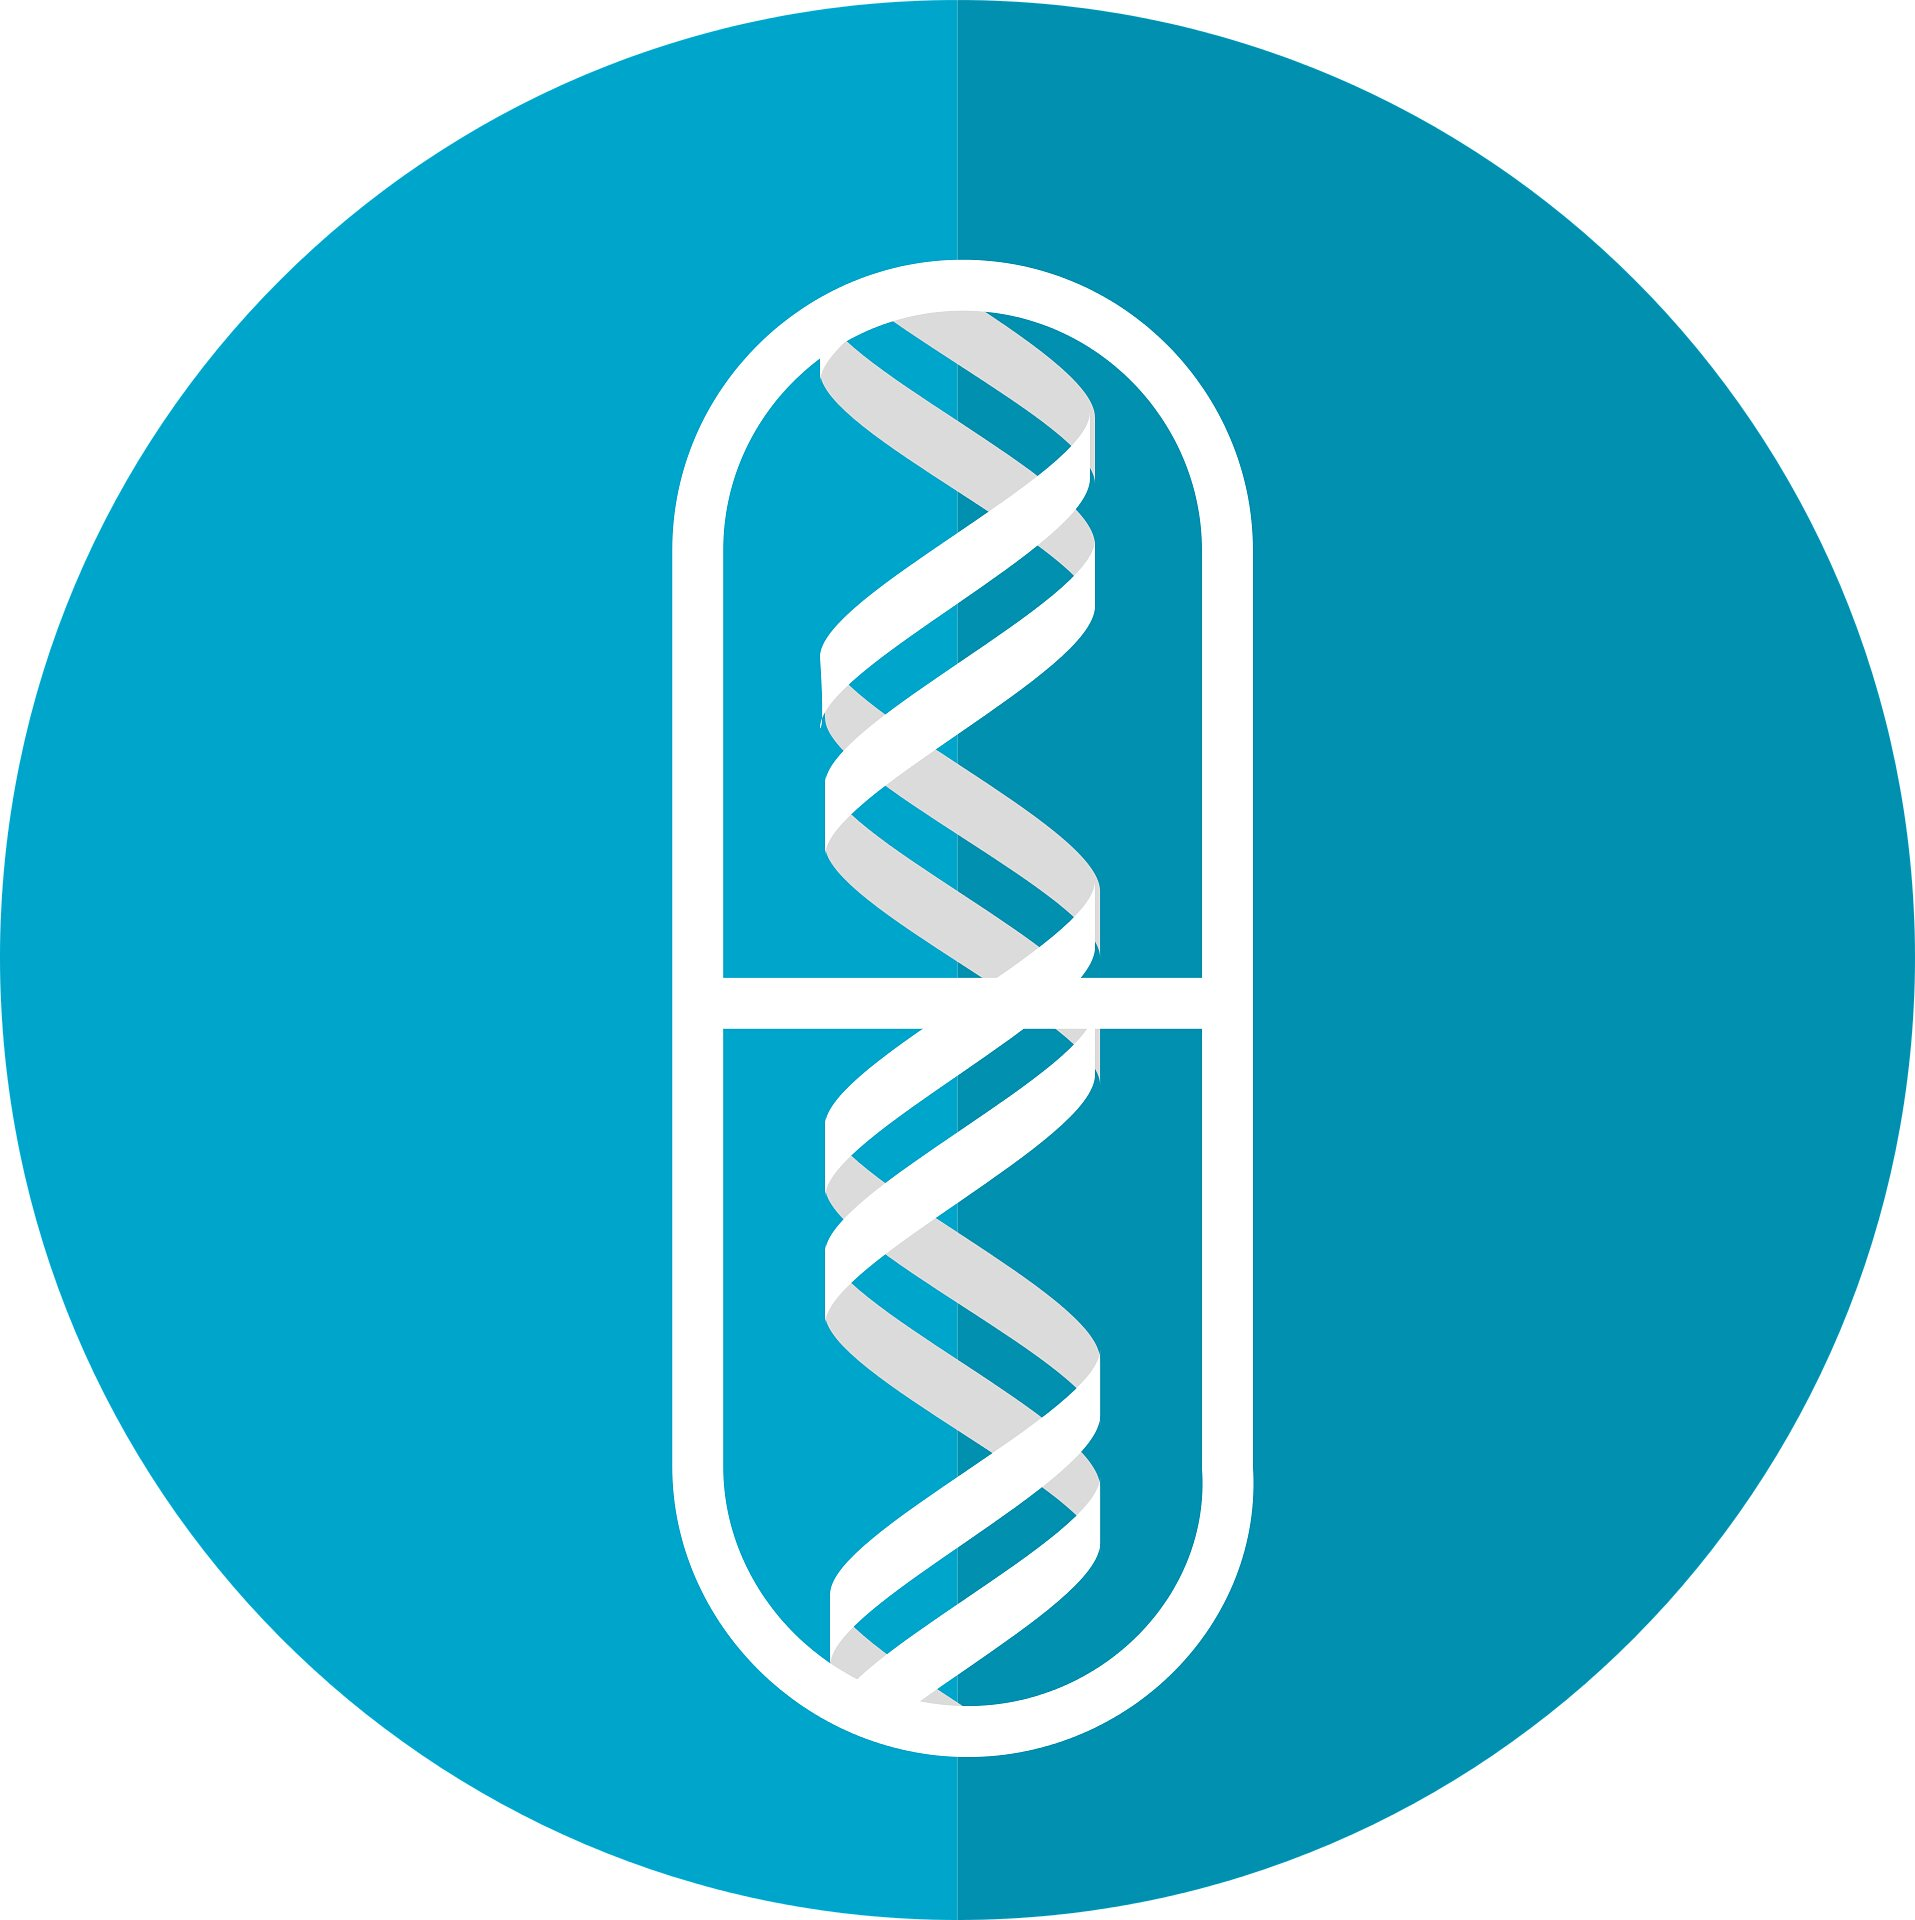 Researchers create new protocol to improve gene therapy tool production